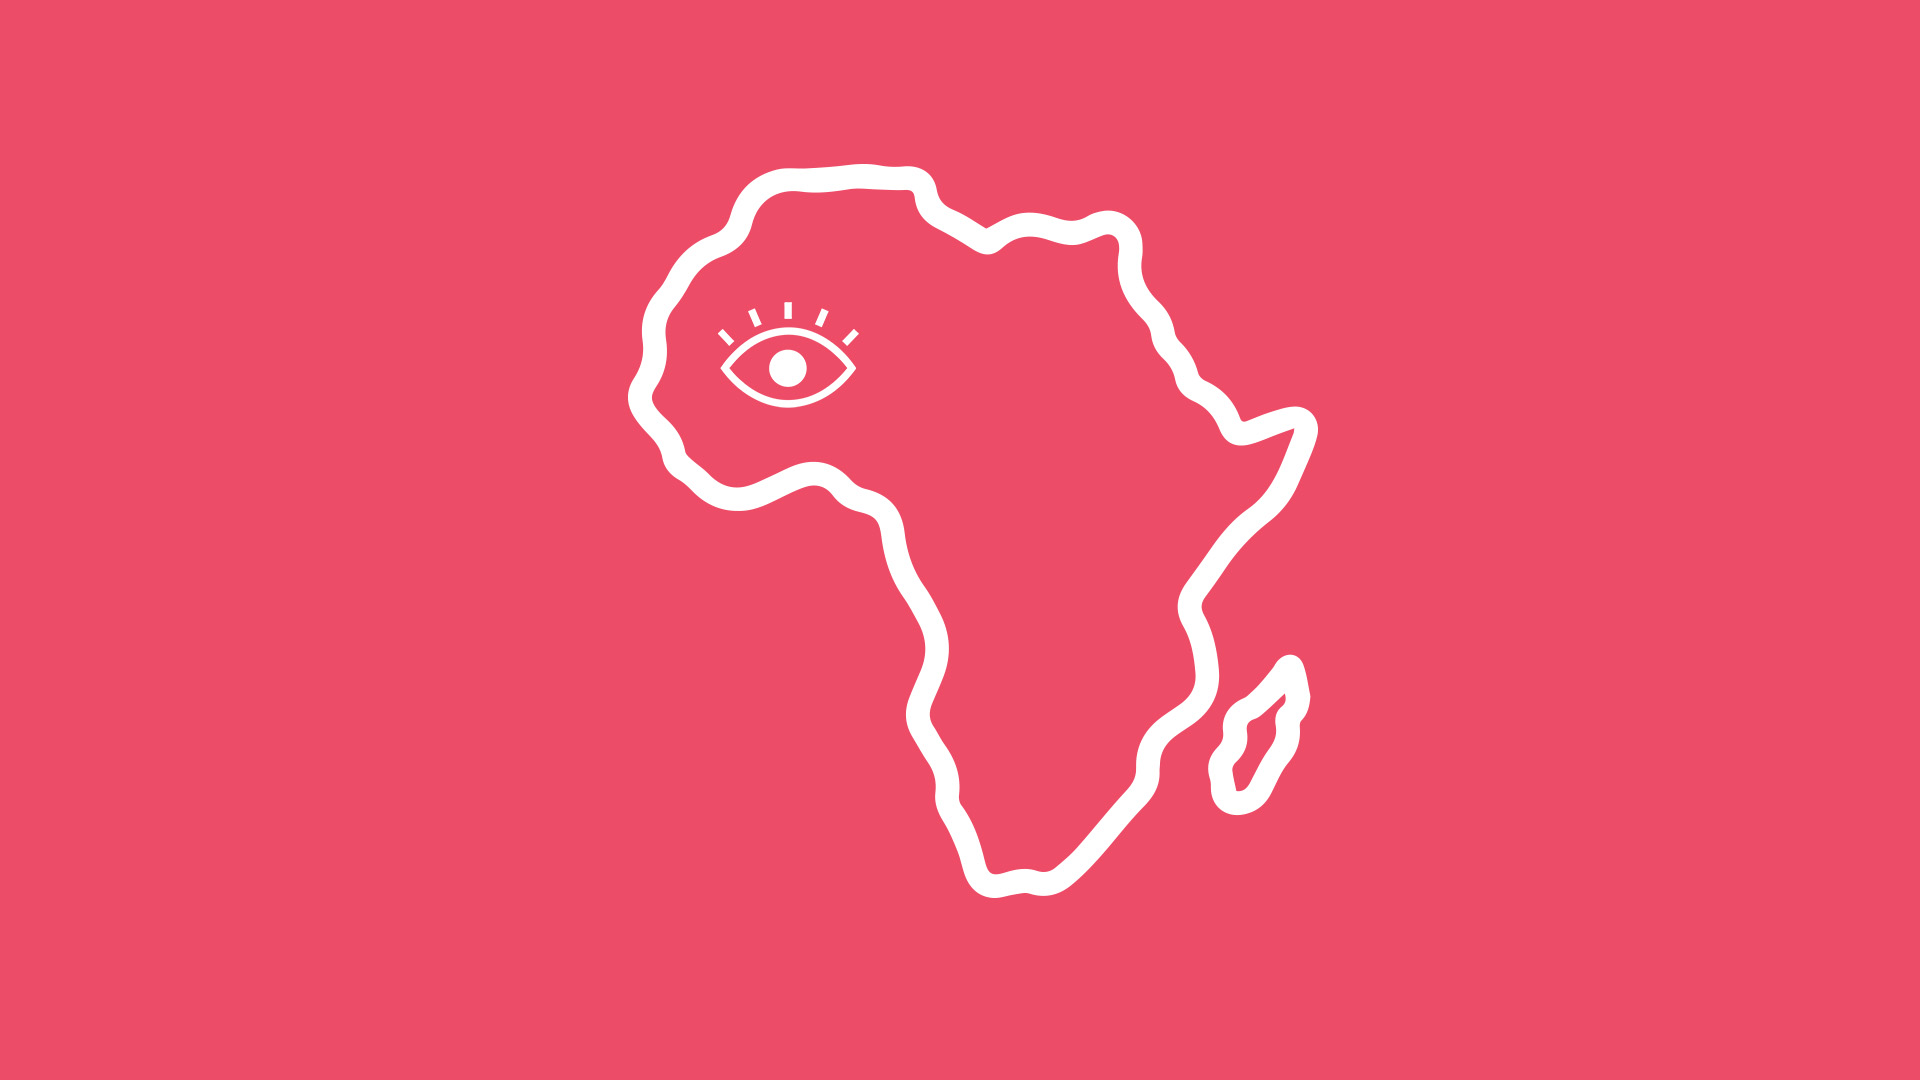 Why should we stop underestimating Africa?